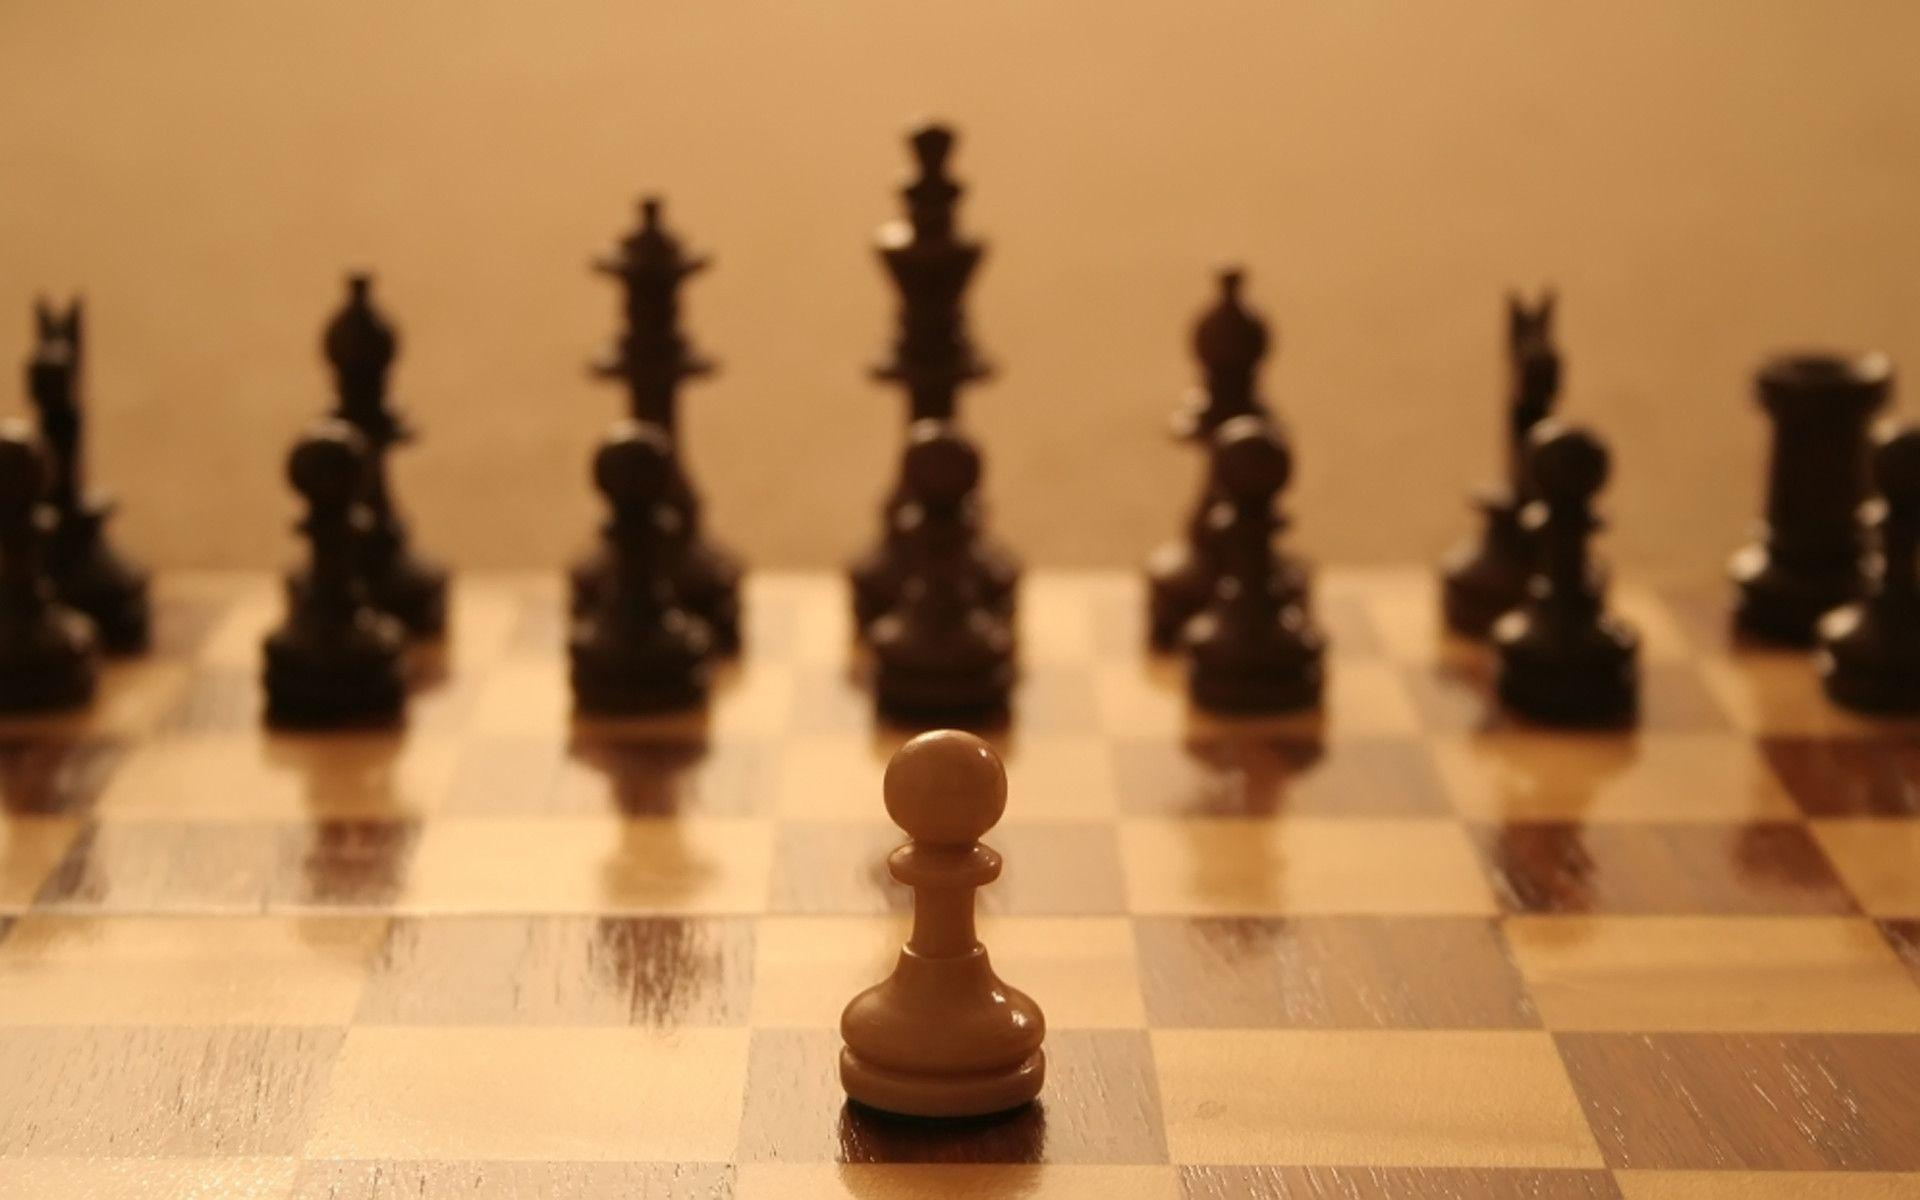 Chess Computer Wallpapers, Desktop Backgrounds 1920x1200 Id: 71792